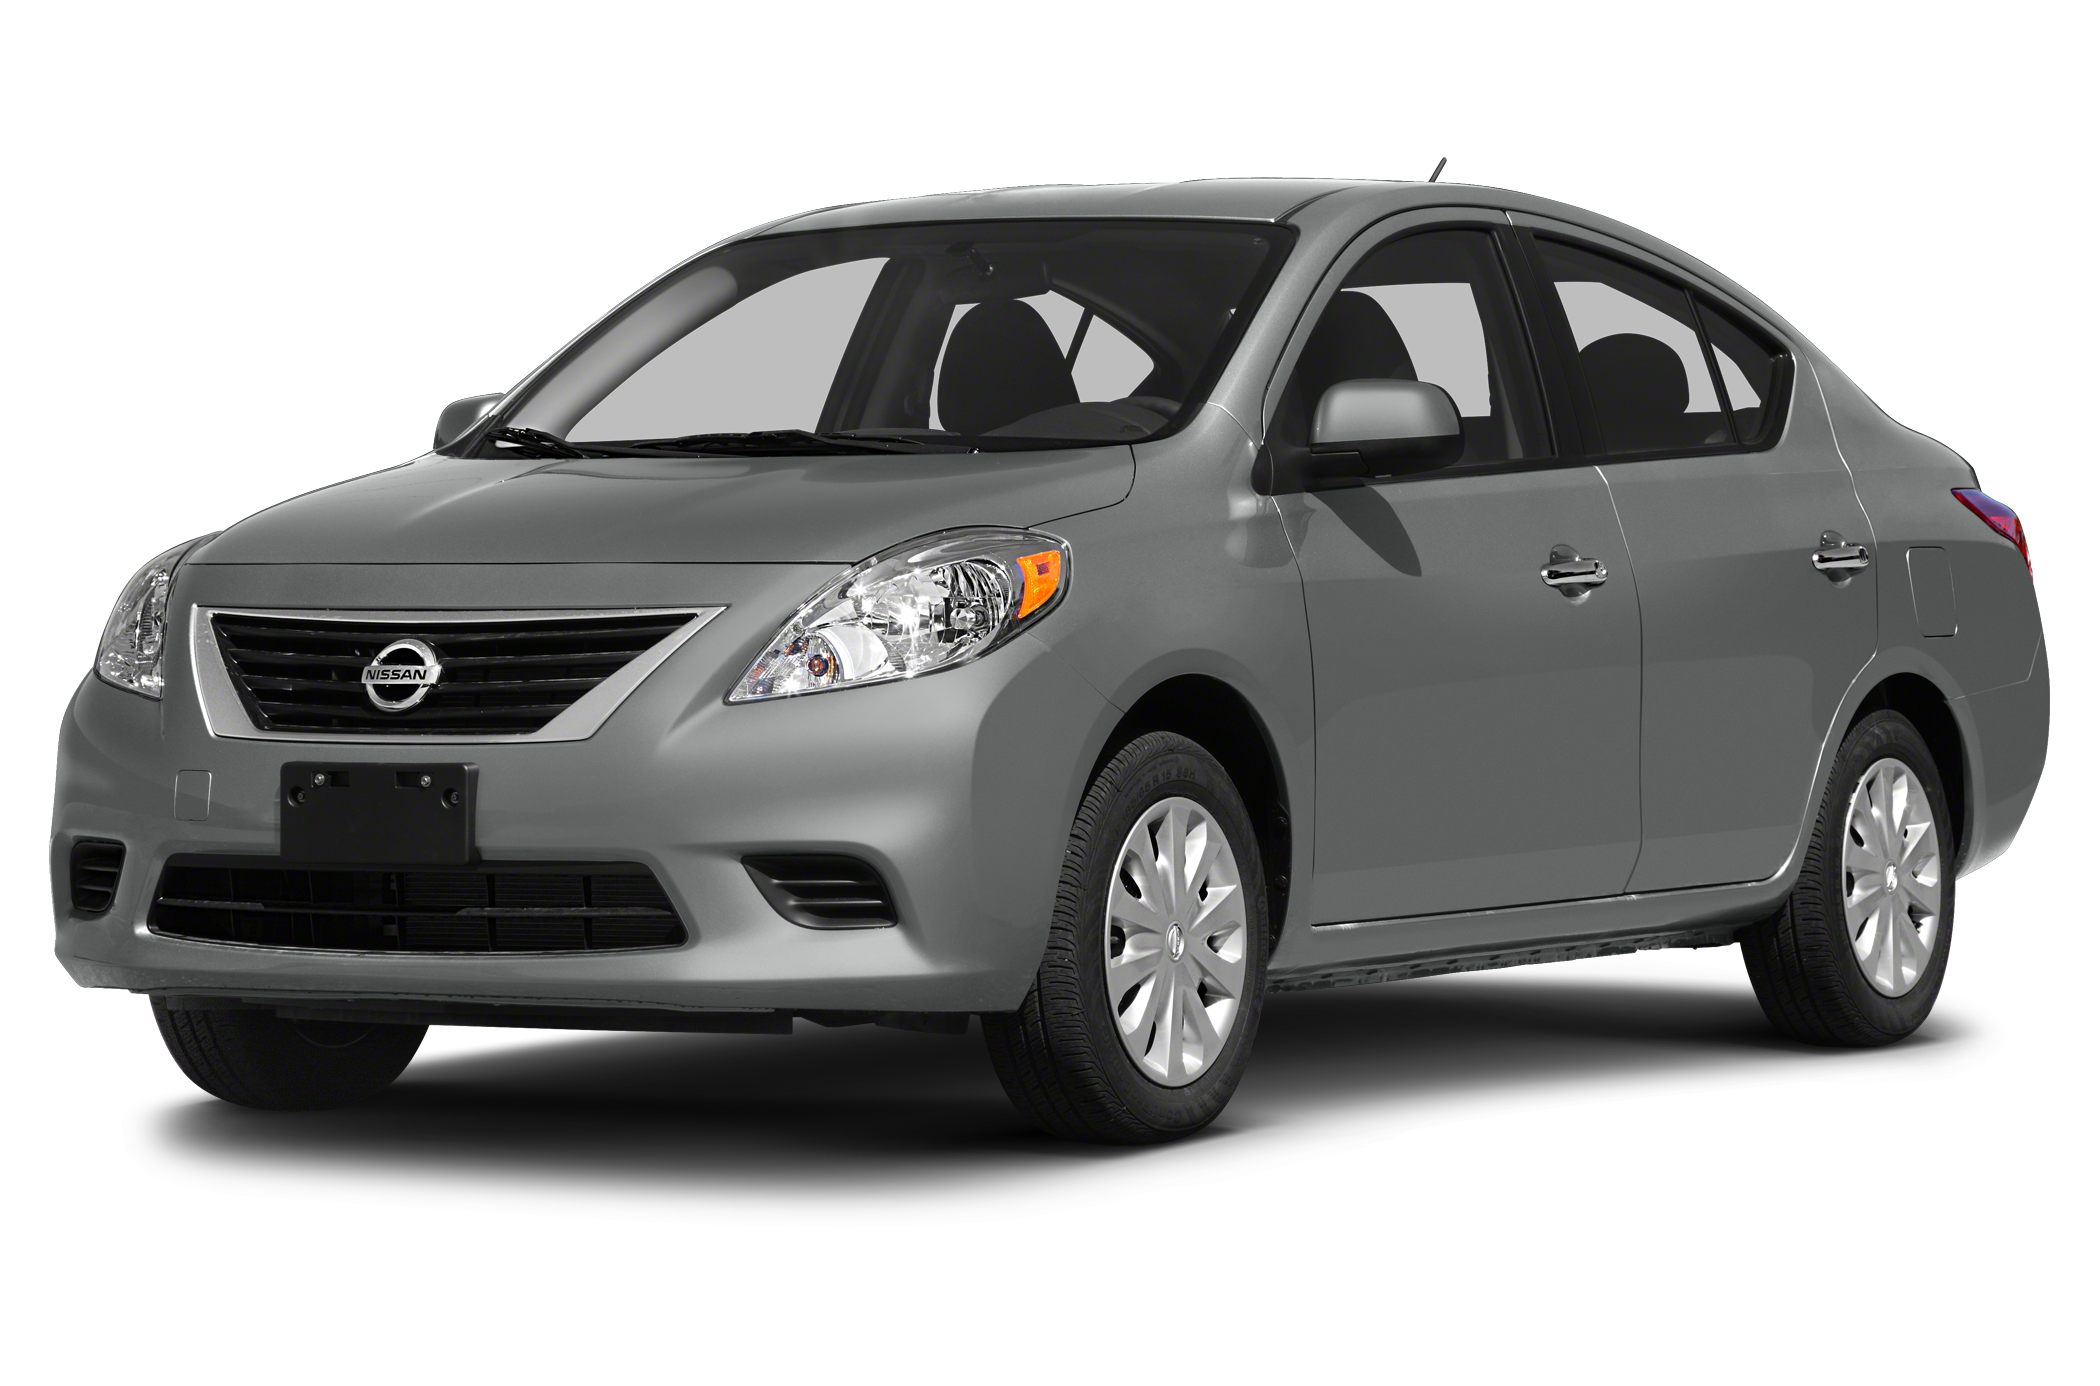 2014 Nissan Versa 16 SV Vehicle Detailed Recent Oil Change and Passed Dealer Inspection Self-s